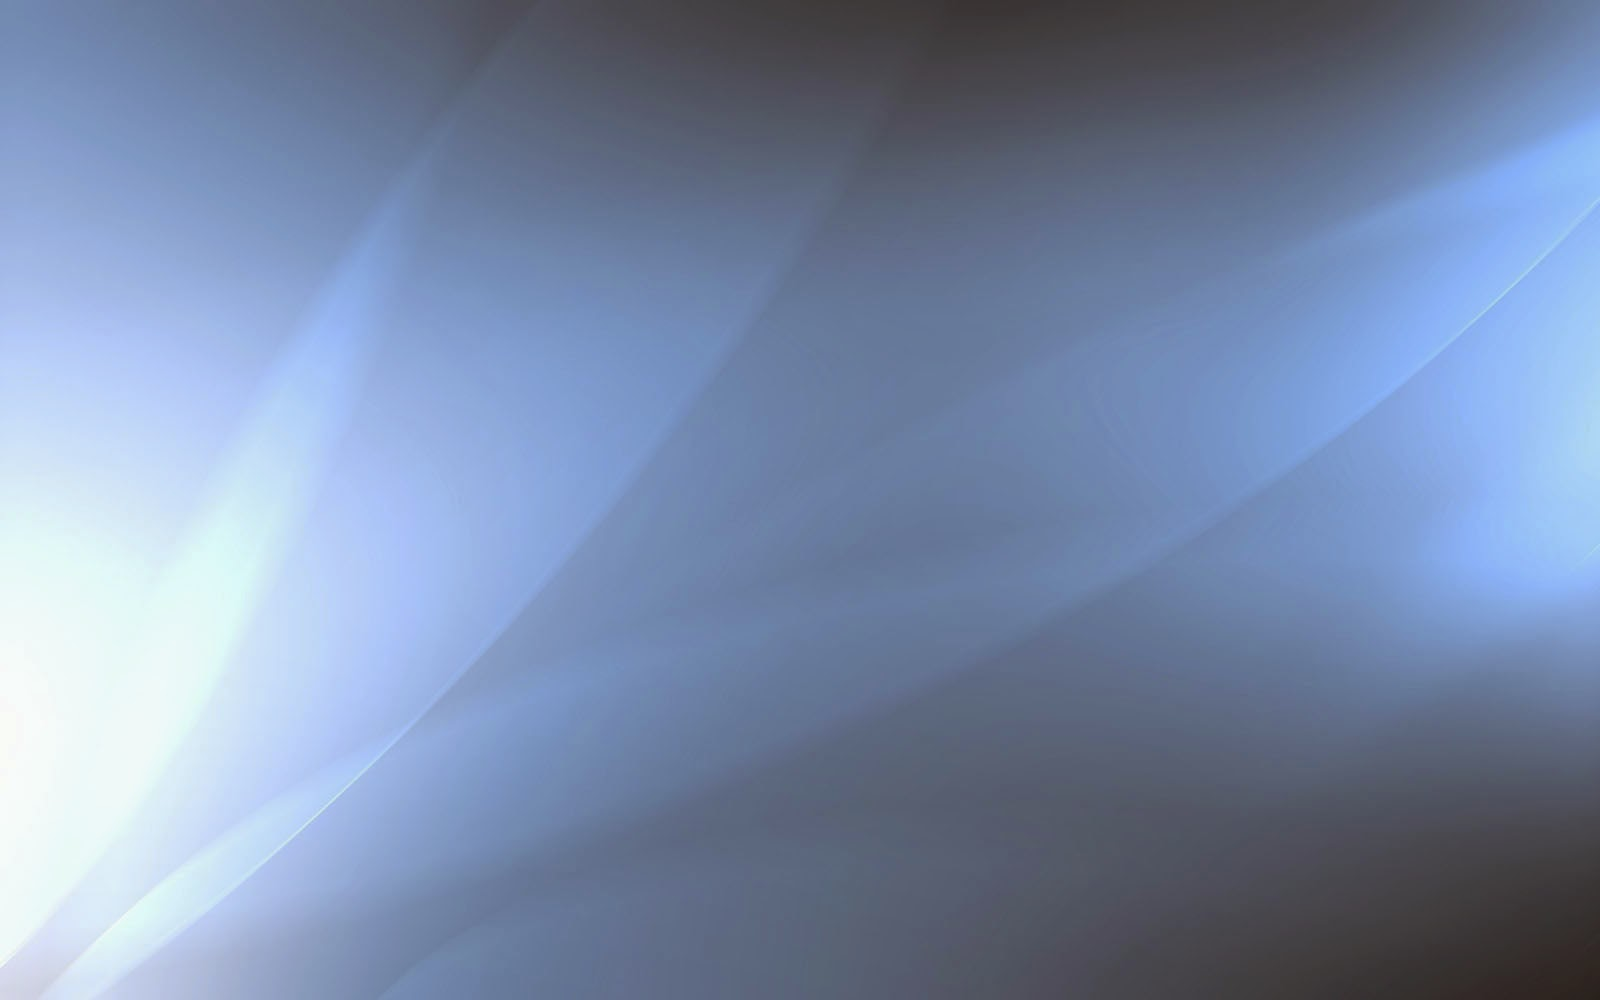 Wallpapers: Abstract Wind Wallpapers